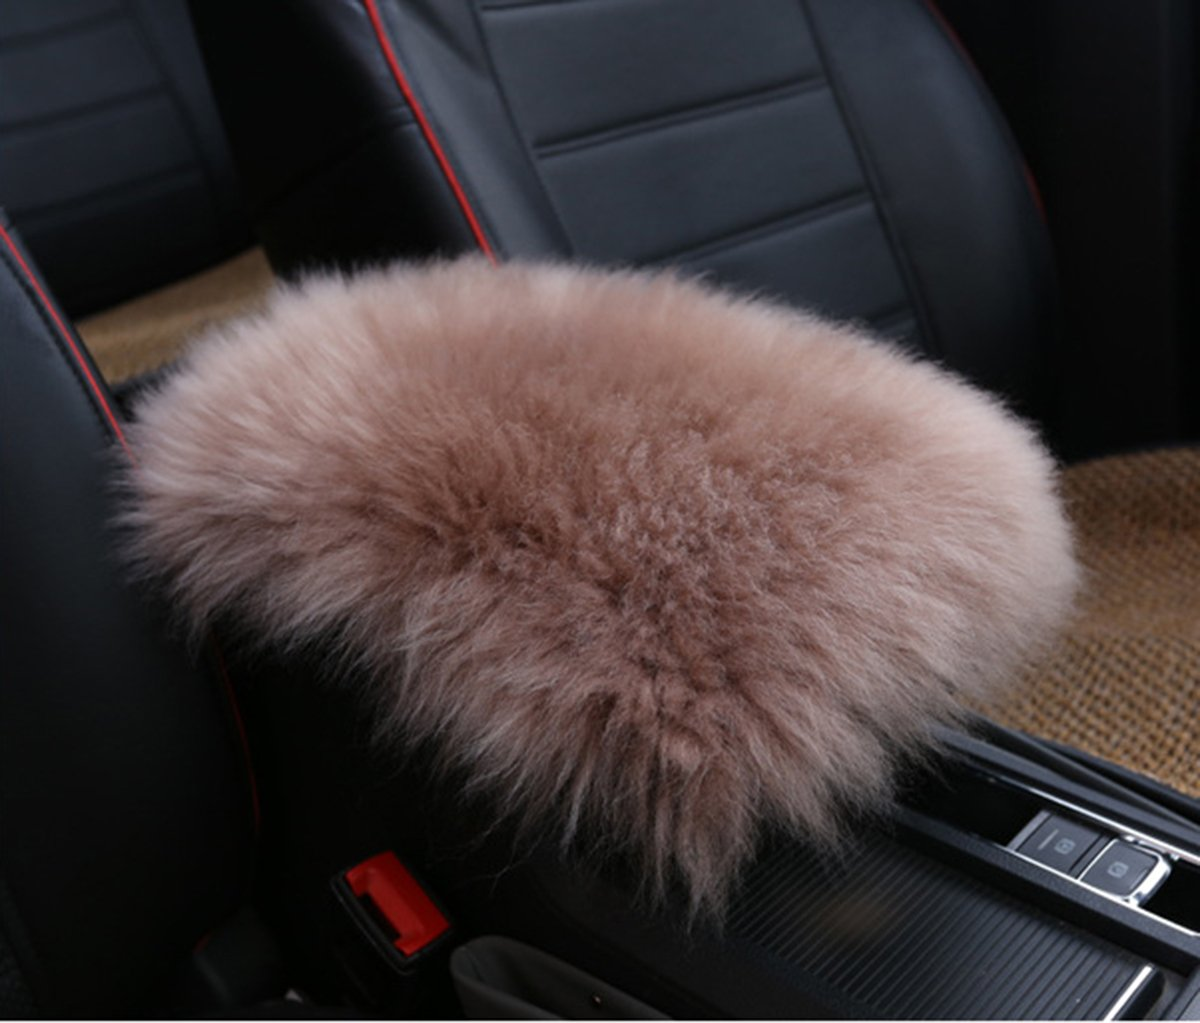 Furry Sheepskin Wool Car Armrest Seat Box Cover Protector Universal Fit Alusbell Auto Center Console Pad W-White